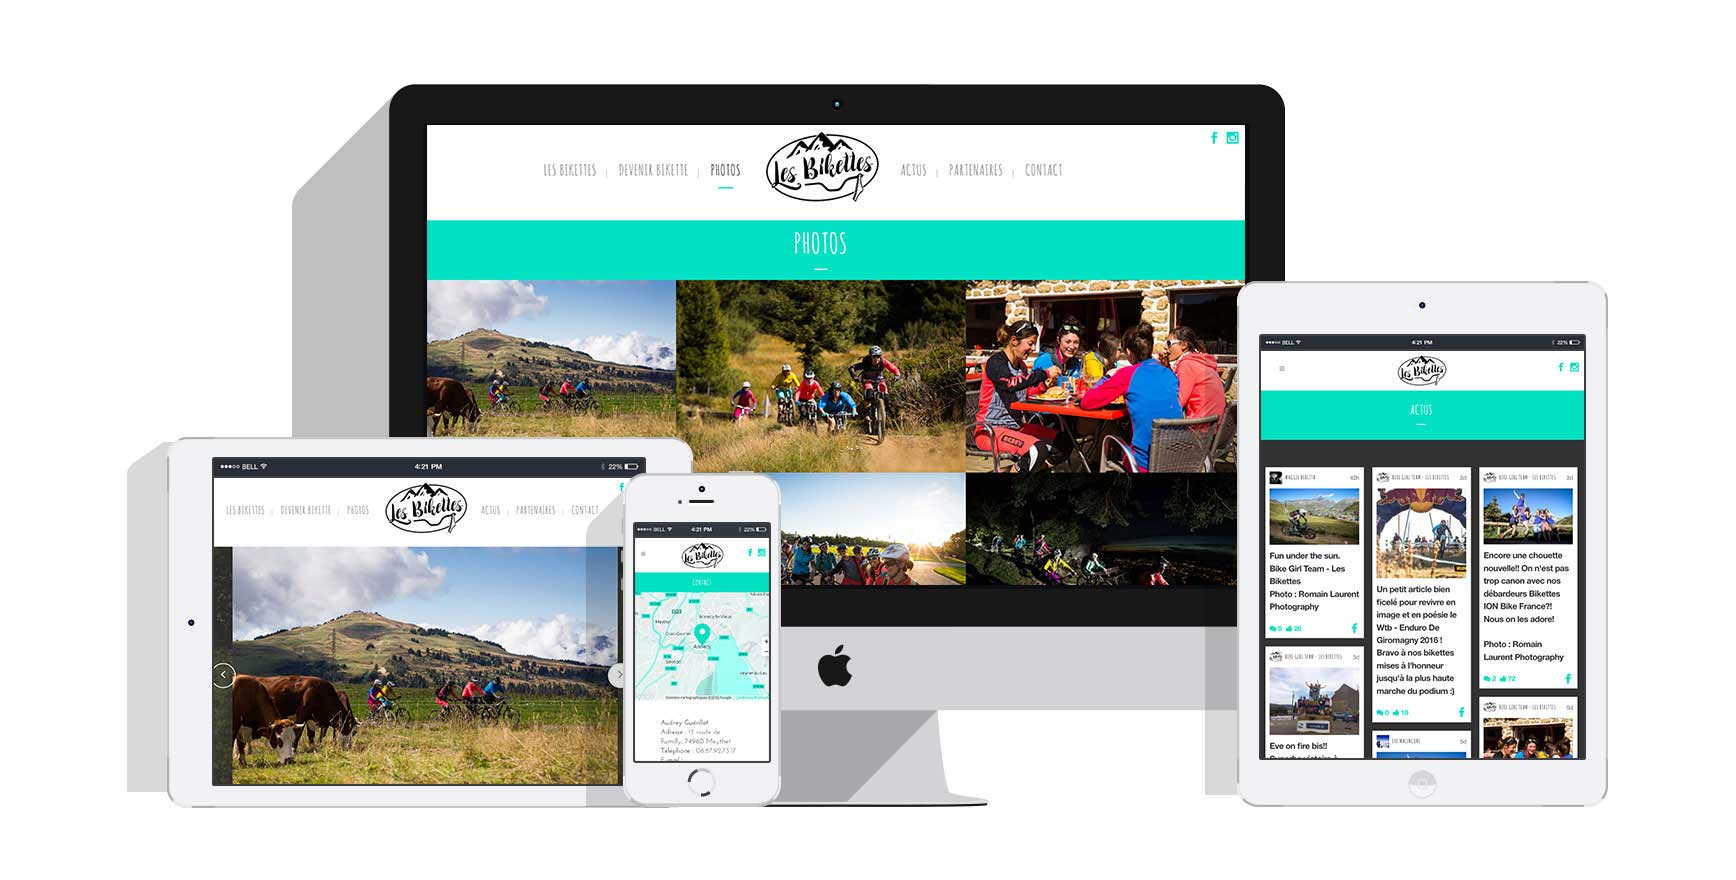 portfolio-bikettes-florence-borrel-flobo-design-graphique-infographie-webdesign-savoie-tarentaise-meribel-menuires-courchevel